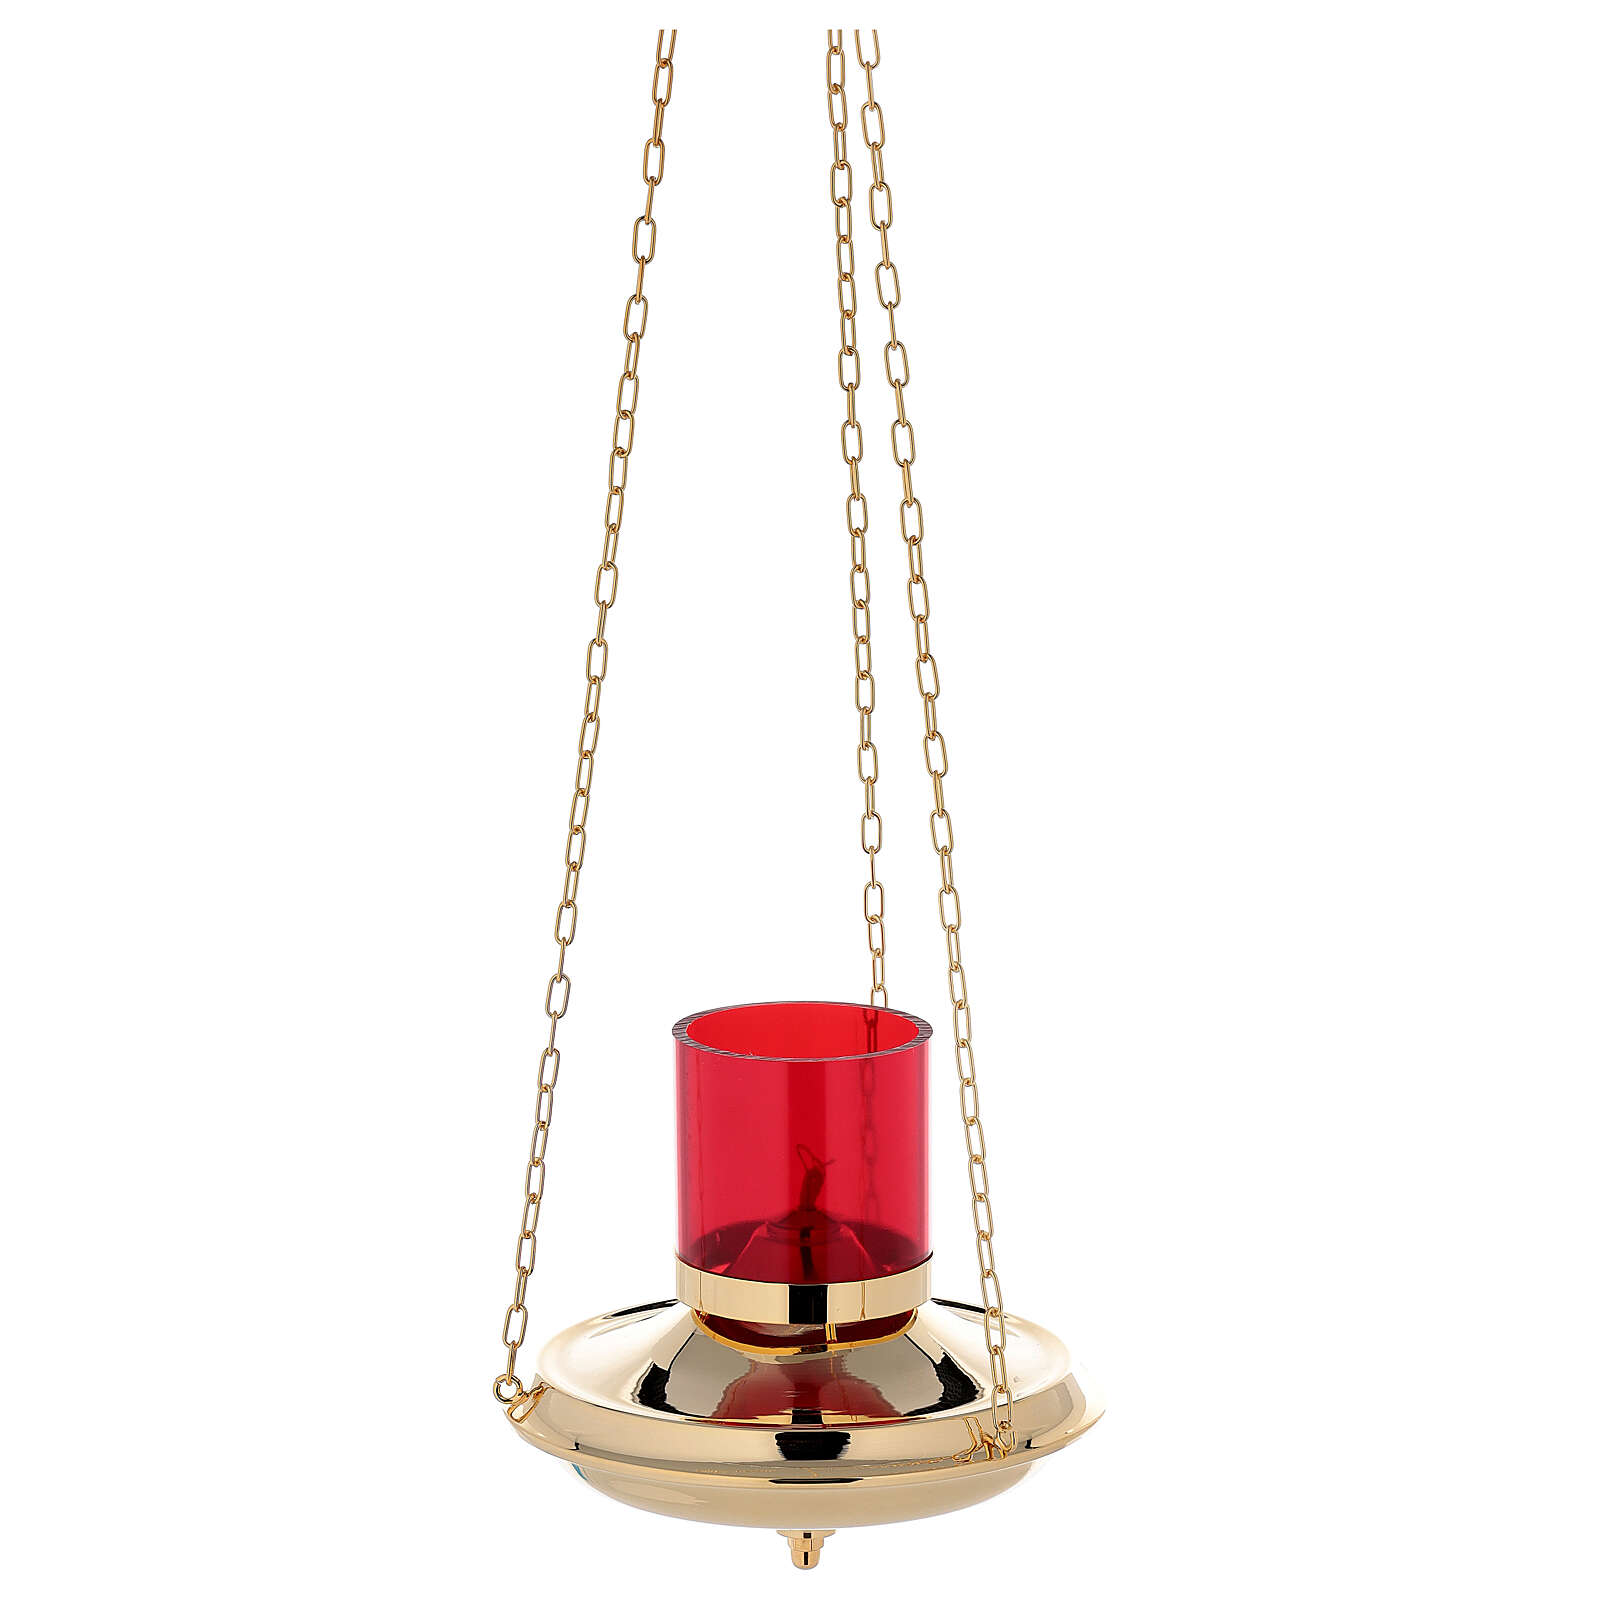 Blessed Sacrament lamp with 1m chain 3